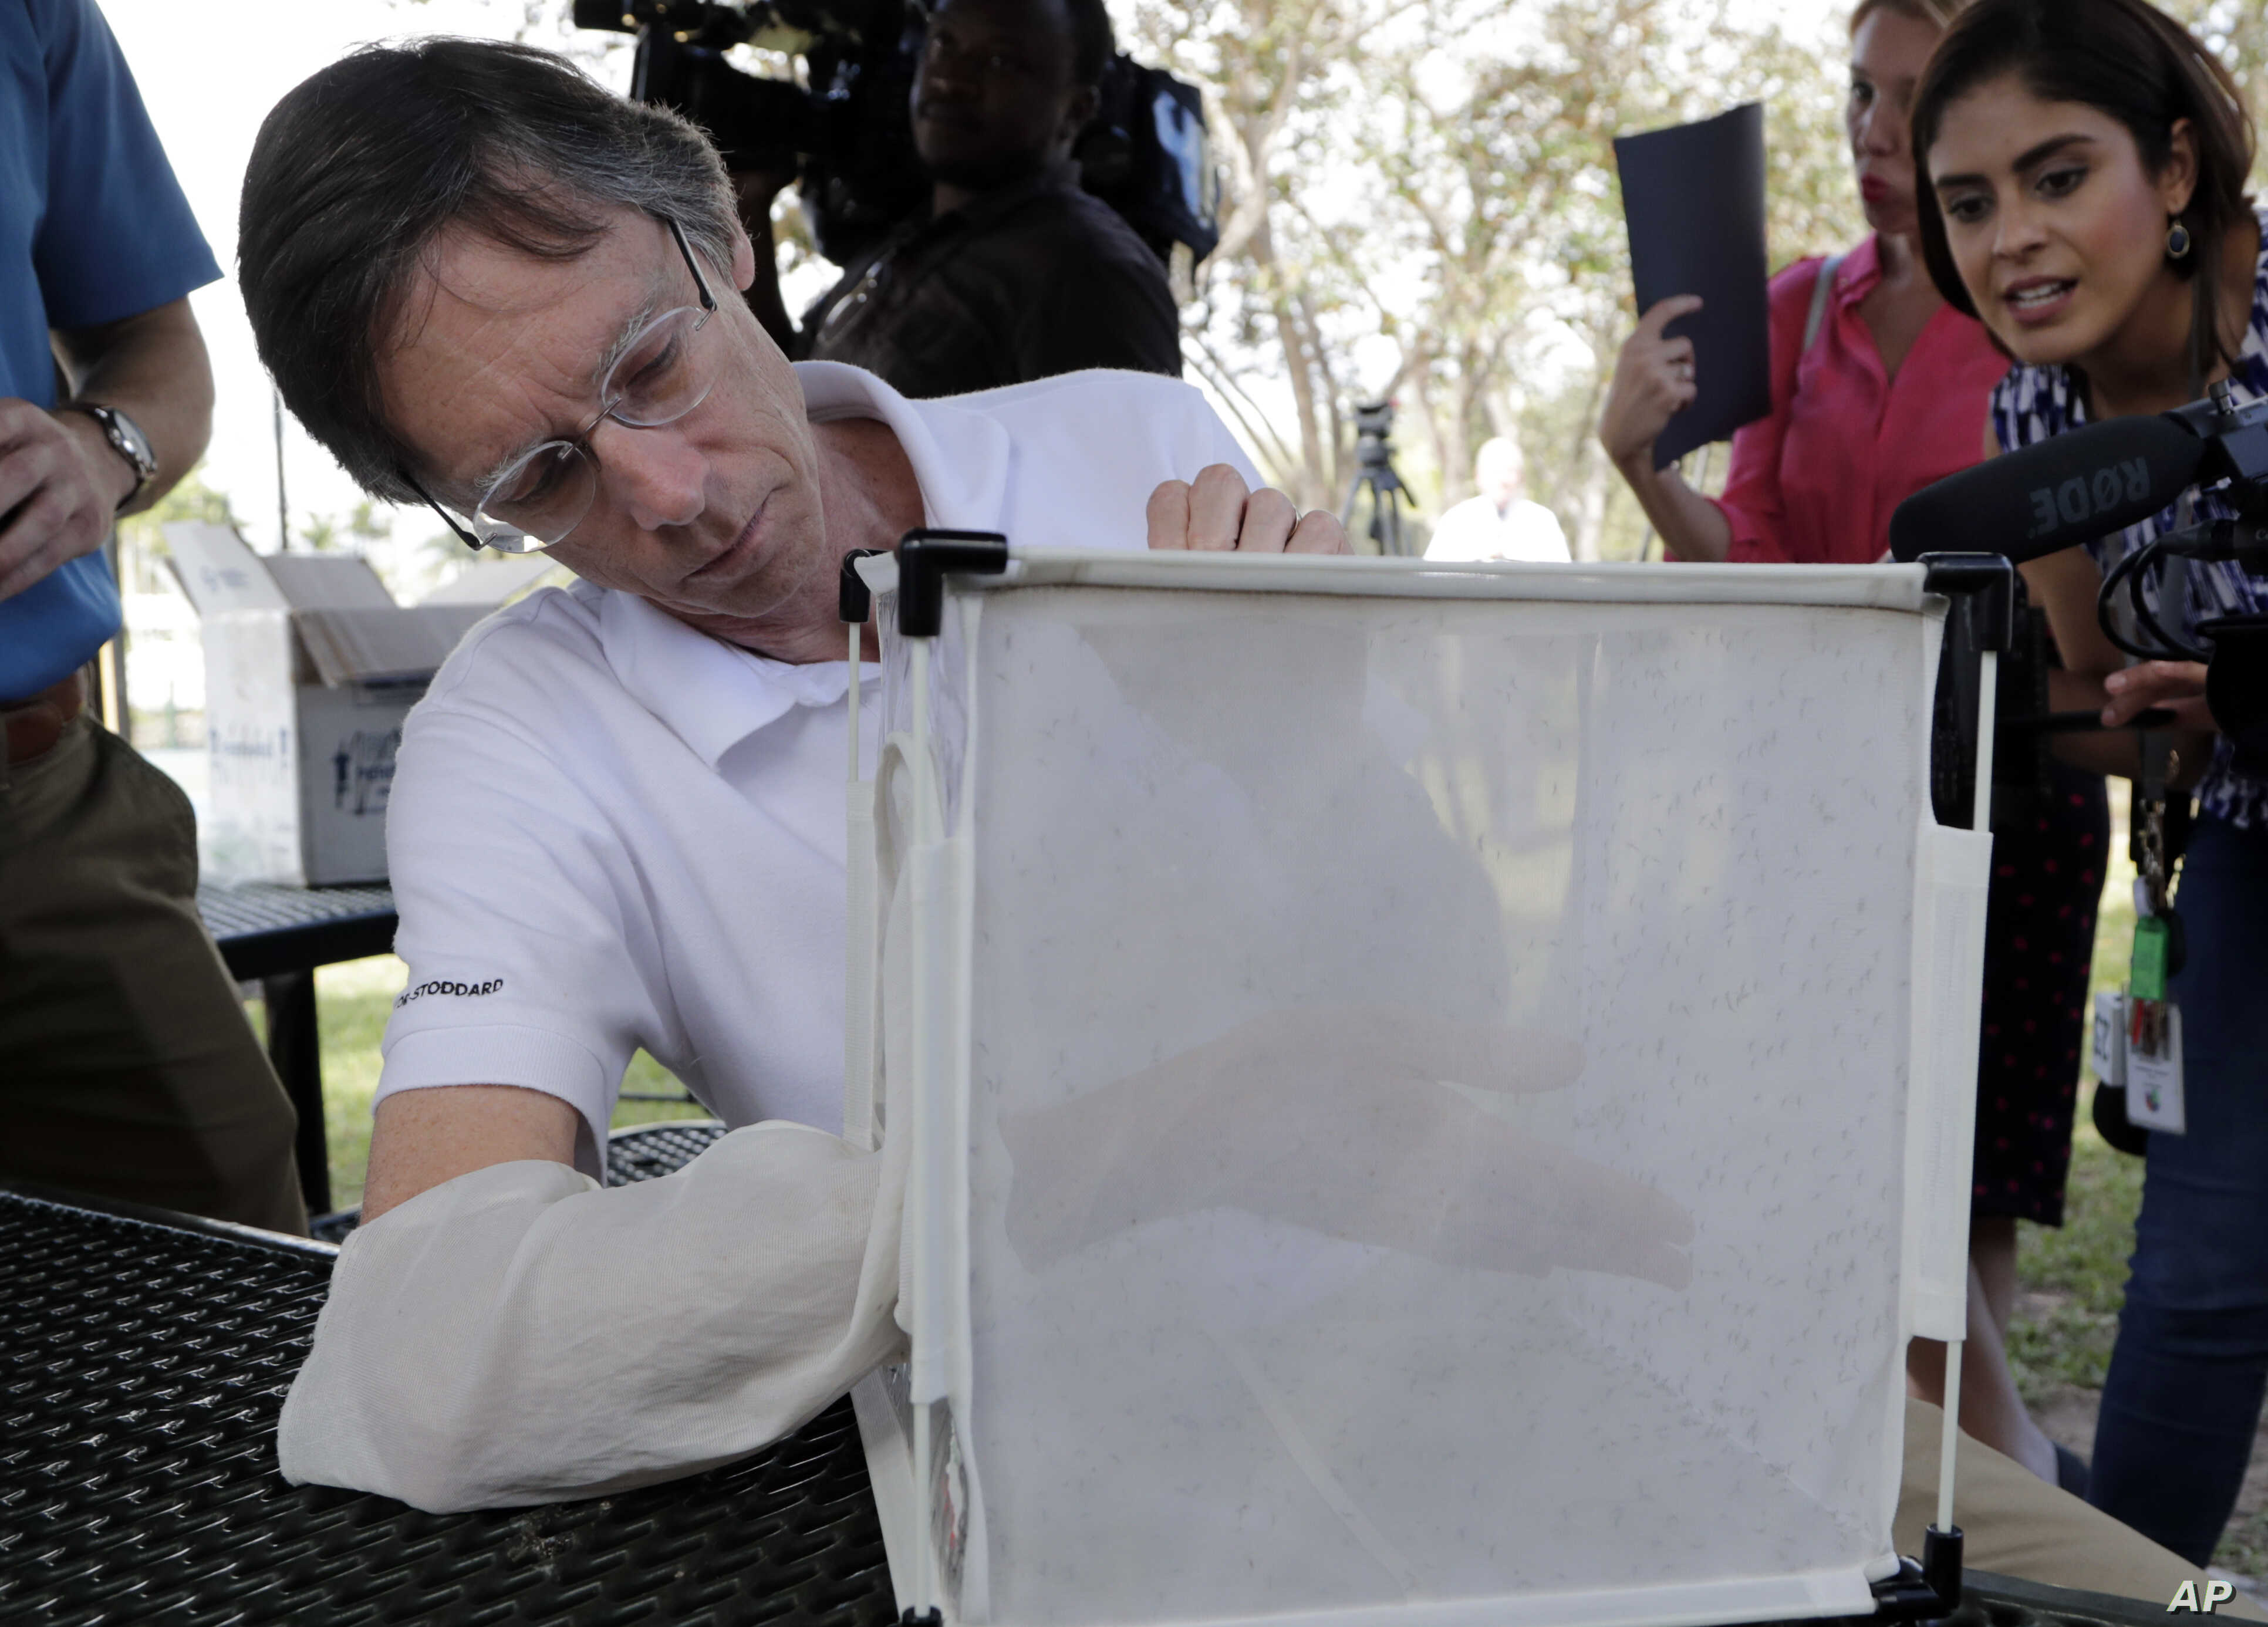 Bill Petrie, director of Miami-Dade County Mosquito Control, places his hand inside a box containing Wolbachia-infected male mosquitoes, in South Miami, Florida, Feb. 8, 2018.